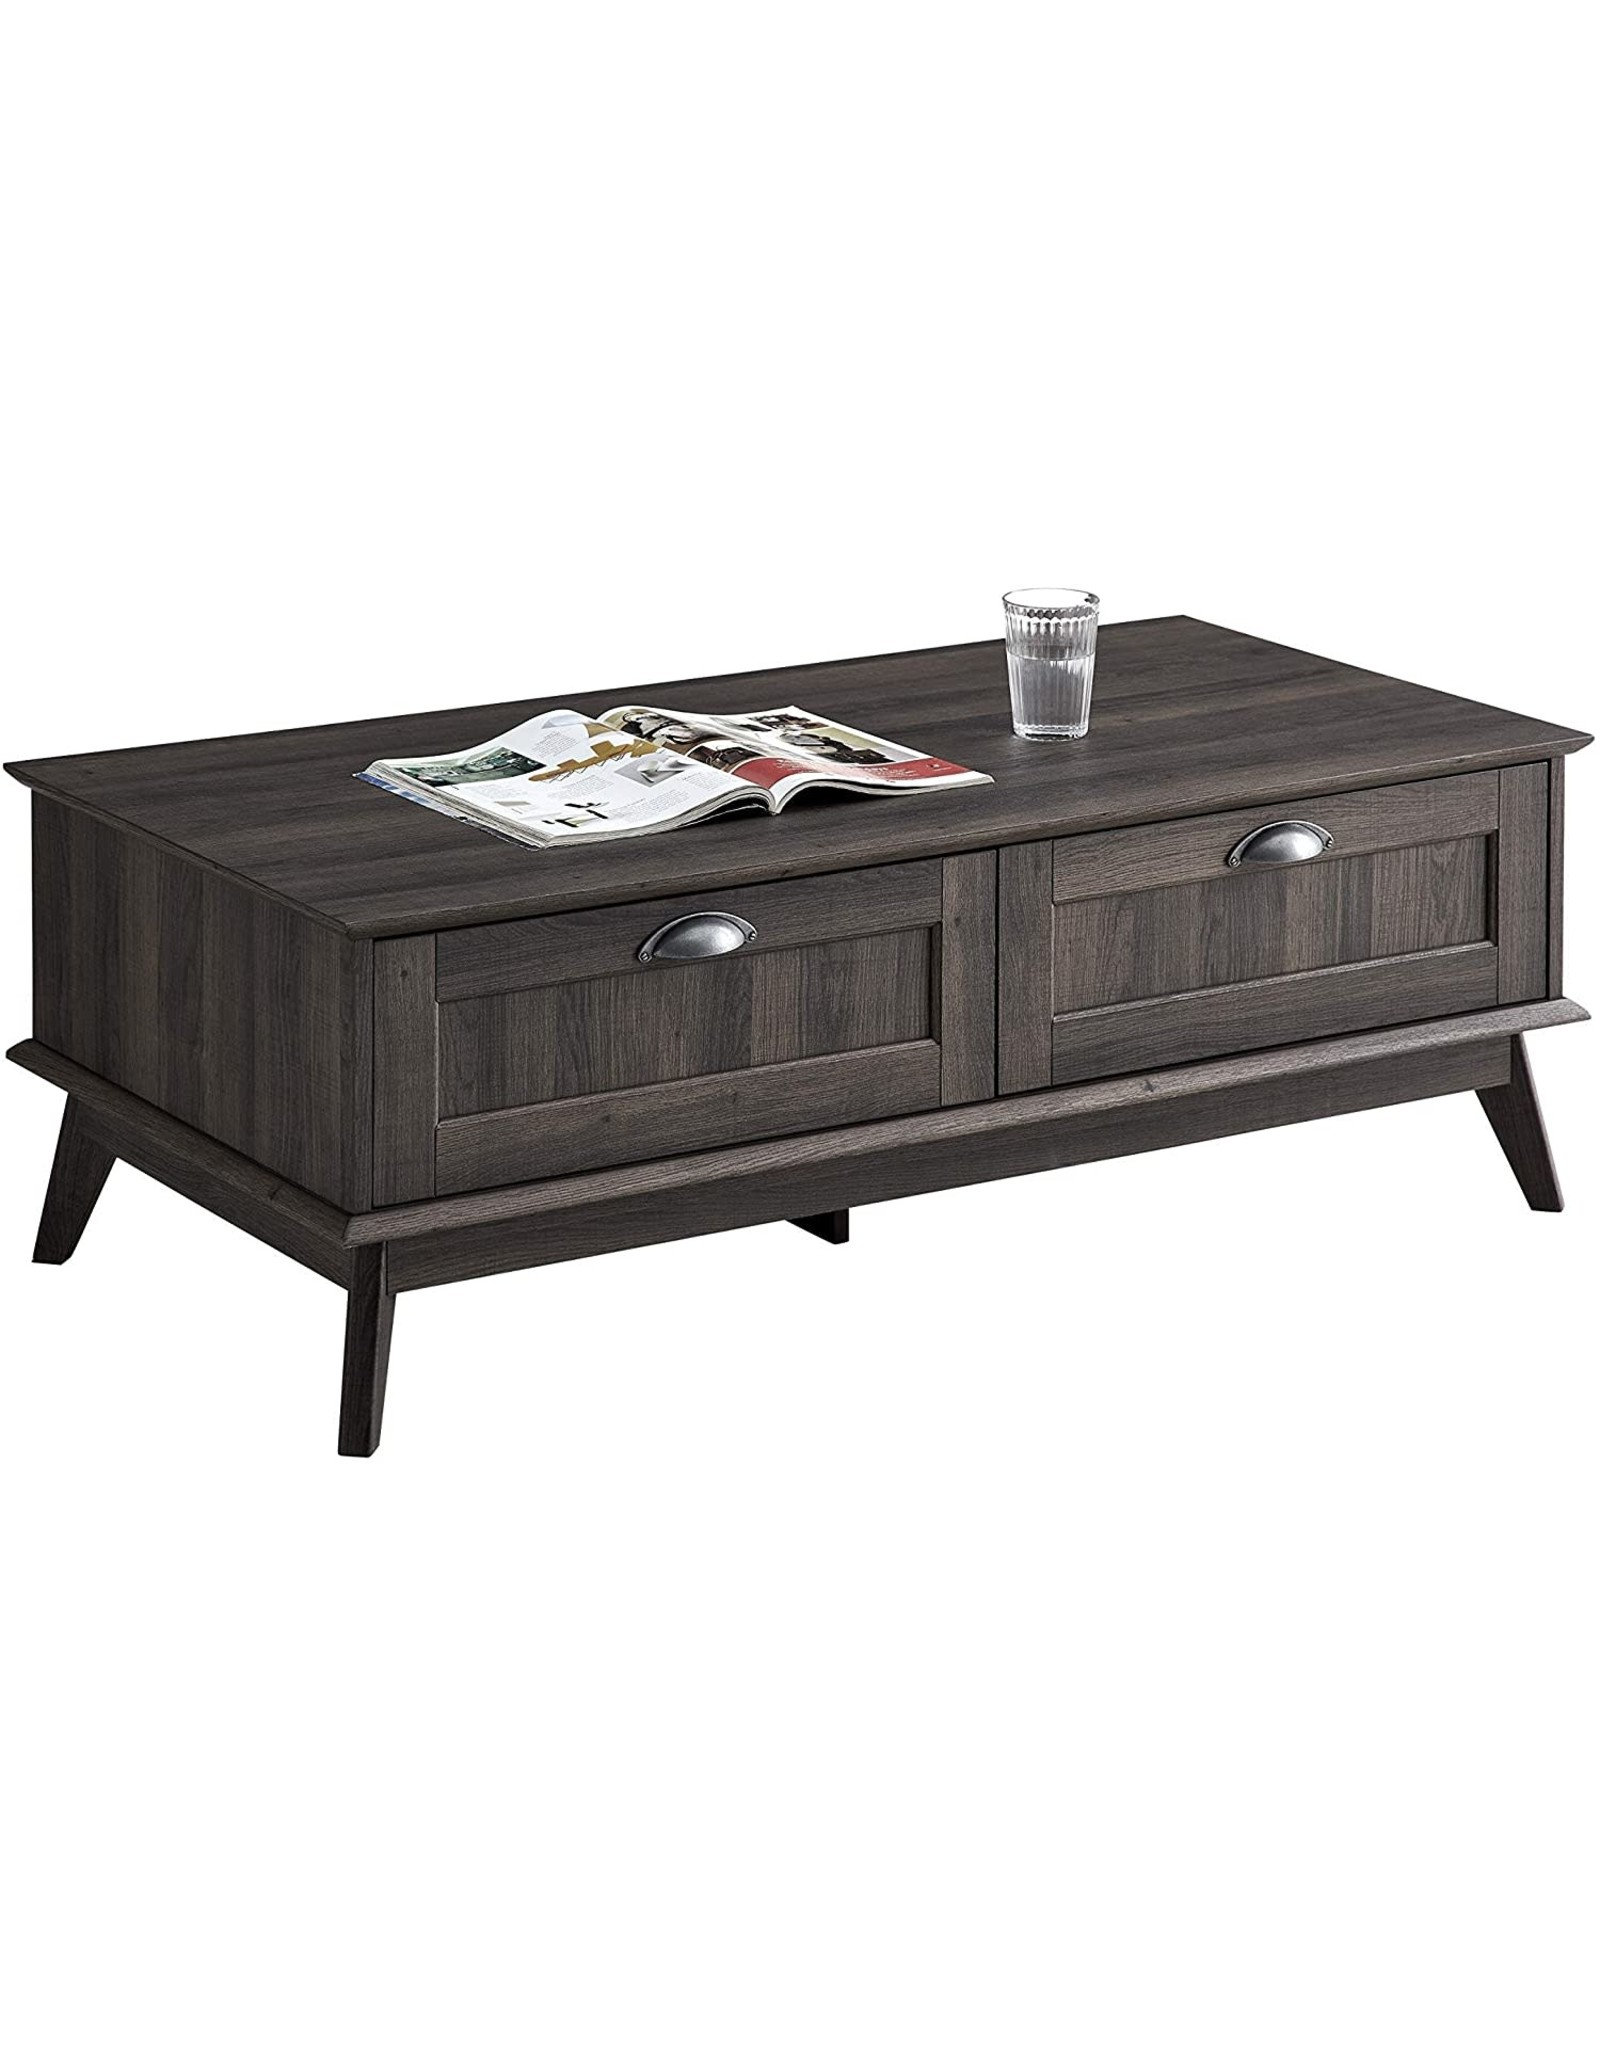 Caffoz Newport Series Tall Center Coffee Table with Two Fully Extended Drawers | Sturdy and Stylish | Easy Assembly| Smoke Oak Wood Look Accent Living Room Home Furniture